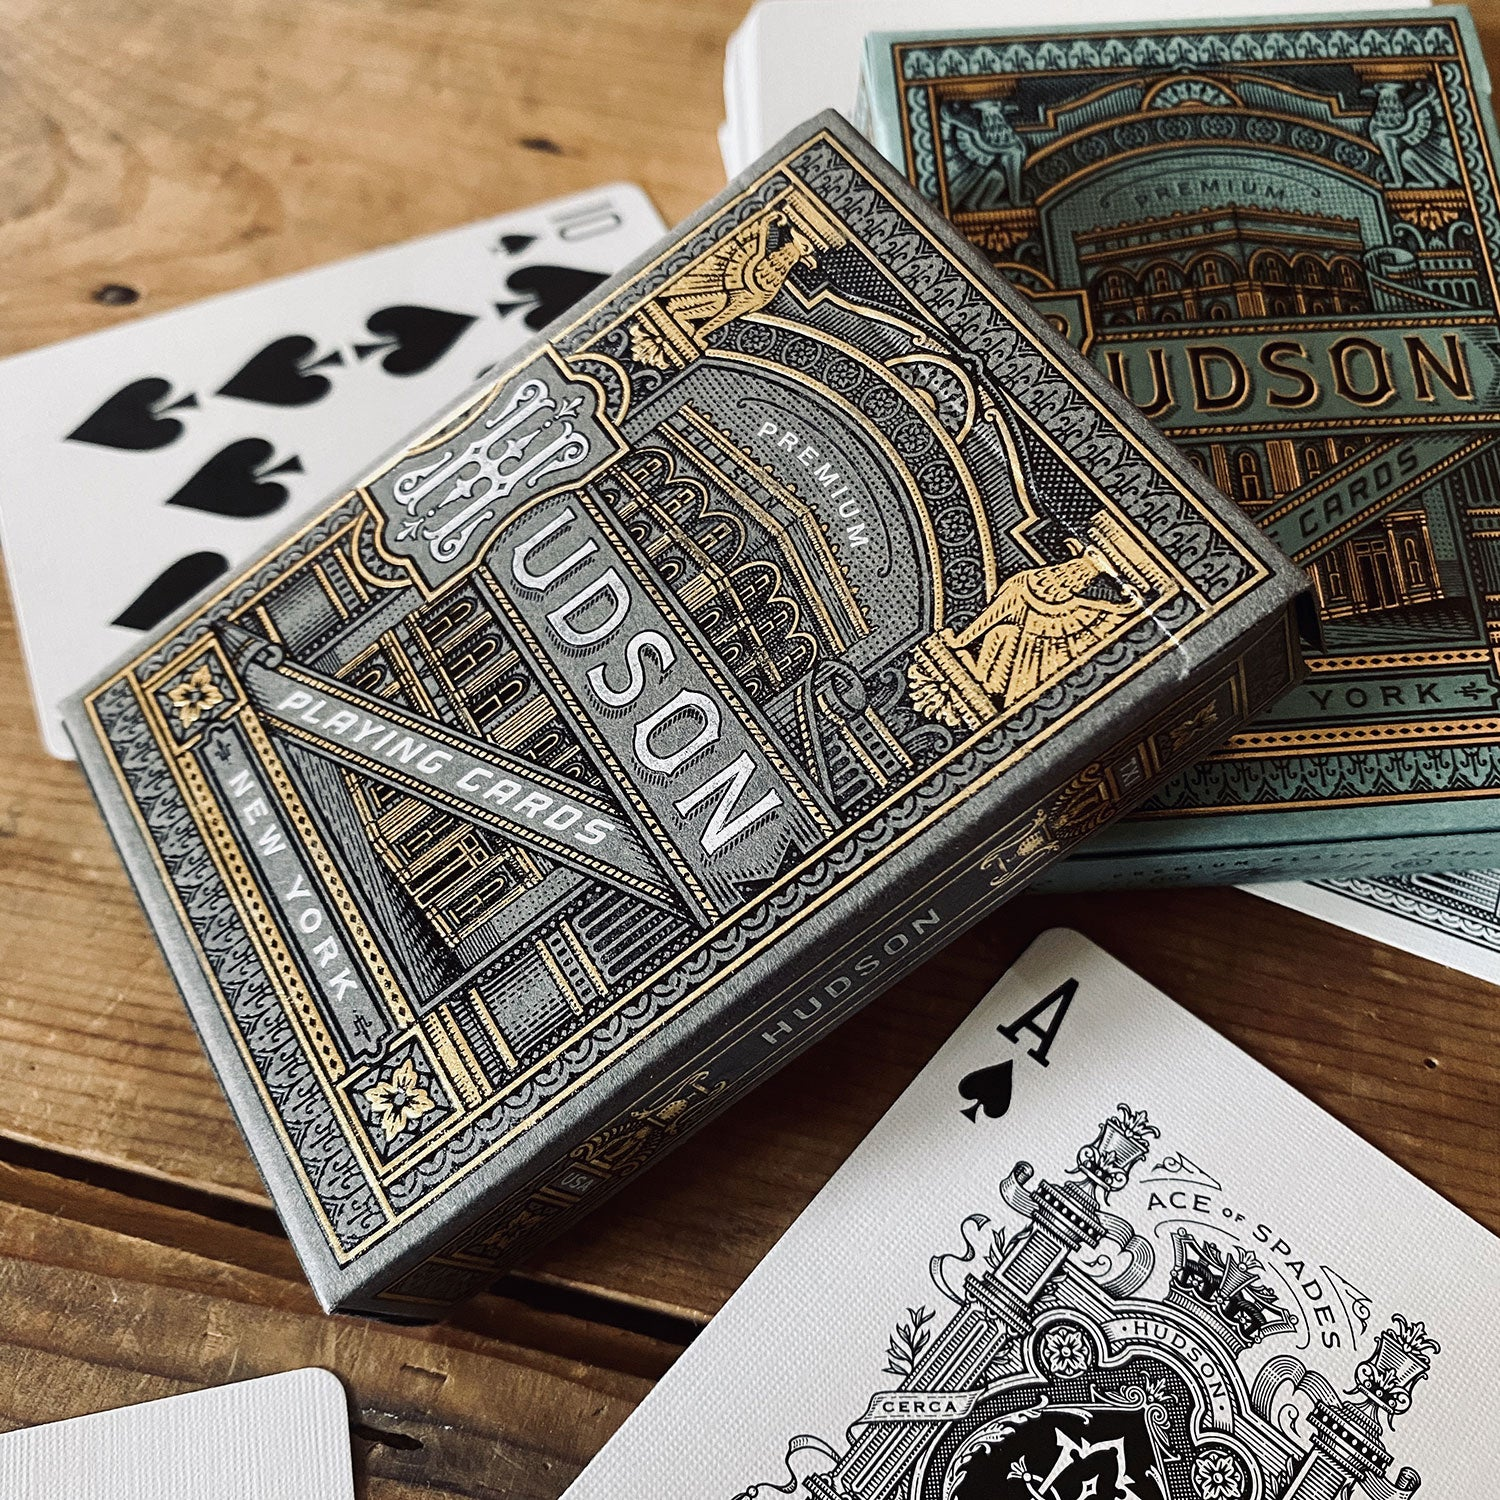 HUDSON GREEN & BLACK - 2 Playing Cards Decks set